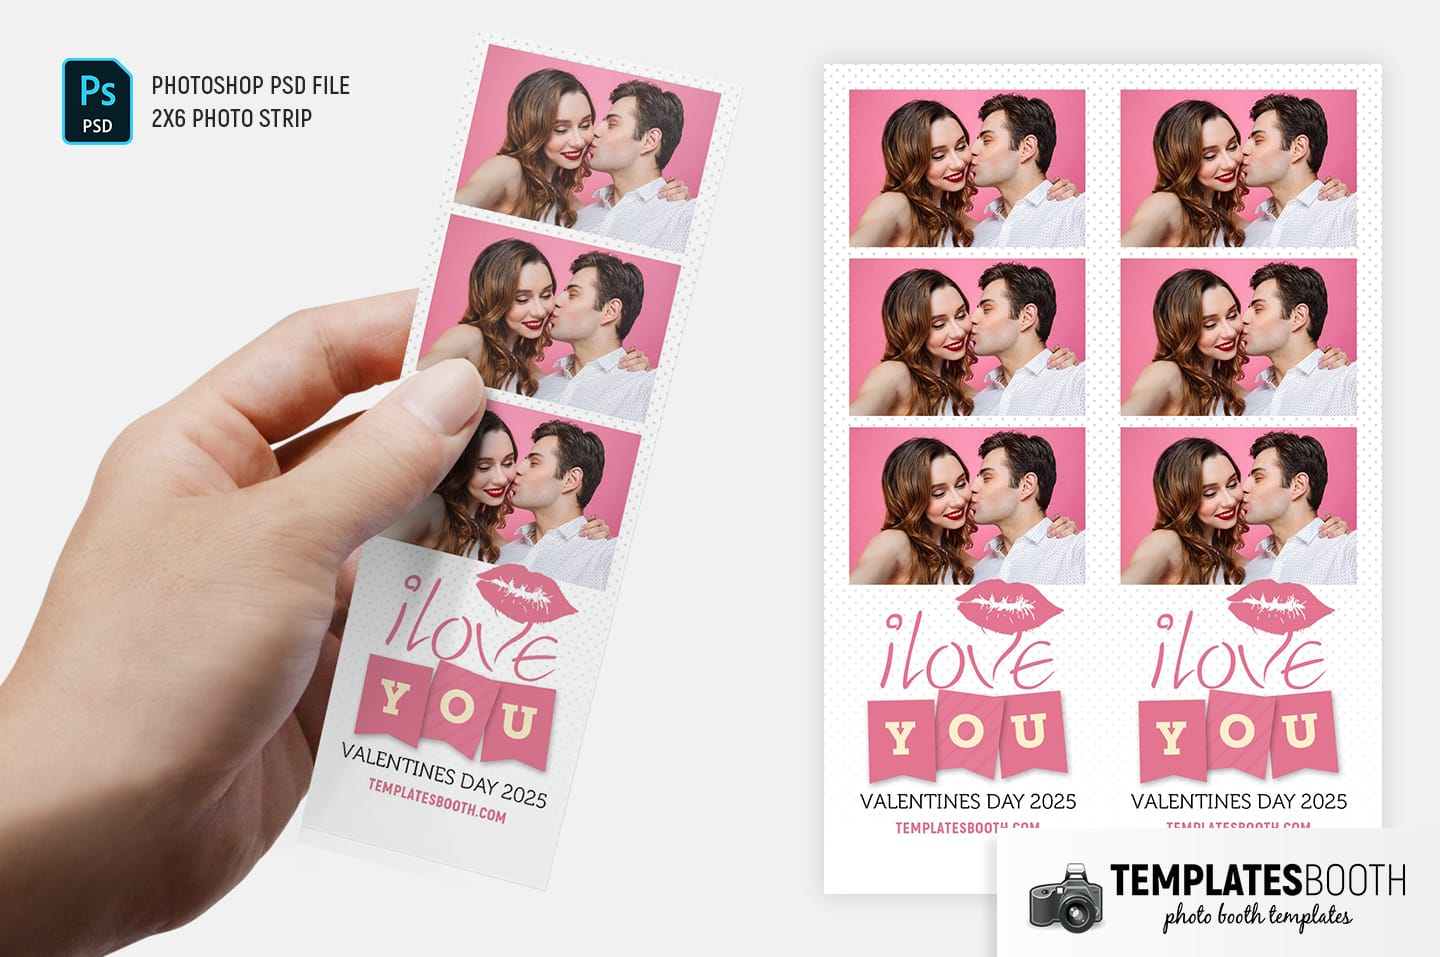 Valentines Kiss Photo Booth Template (2x6 photo strip)